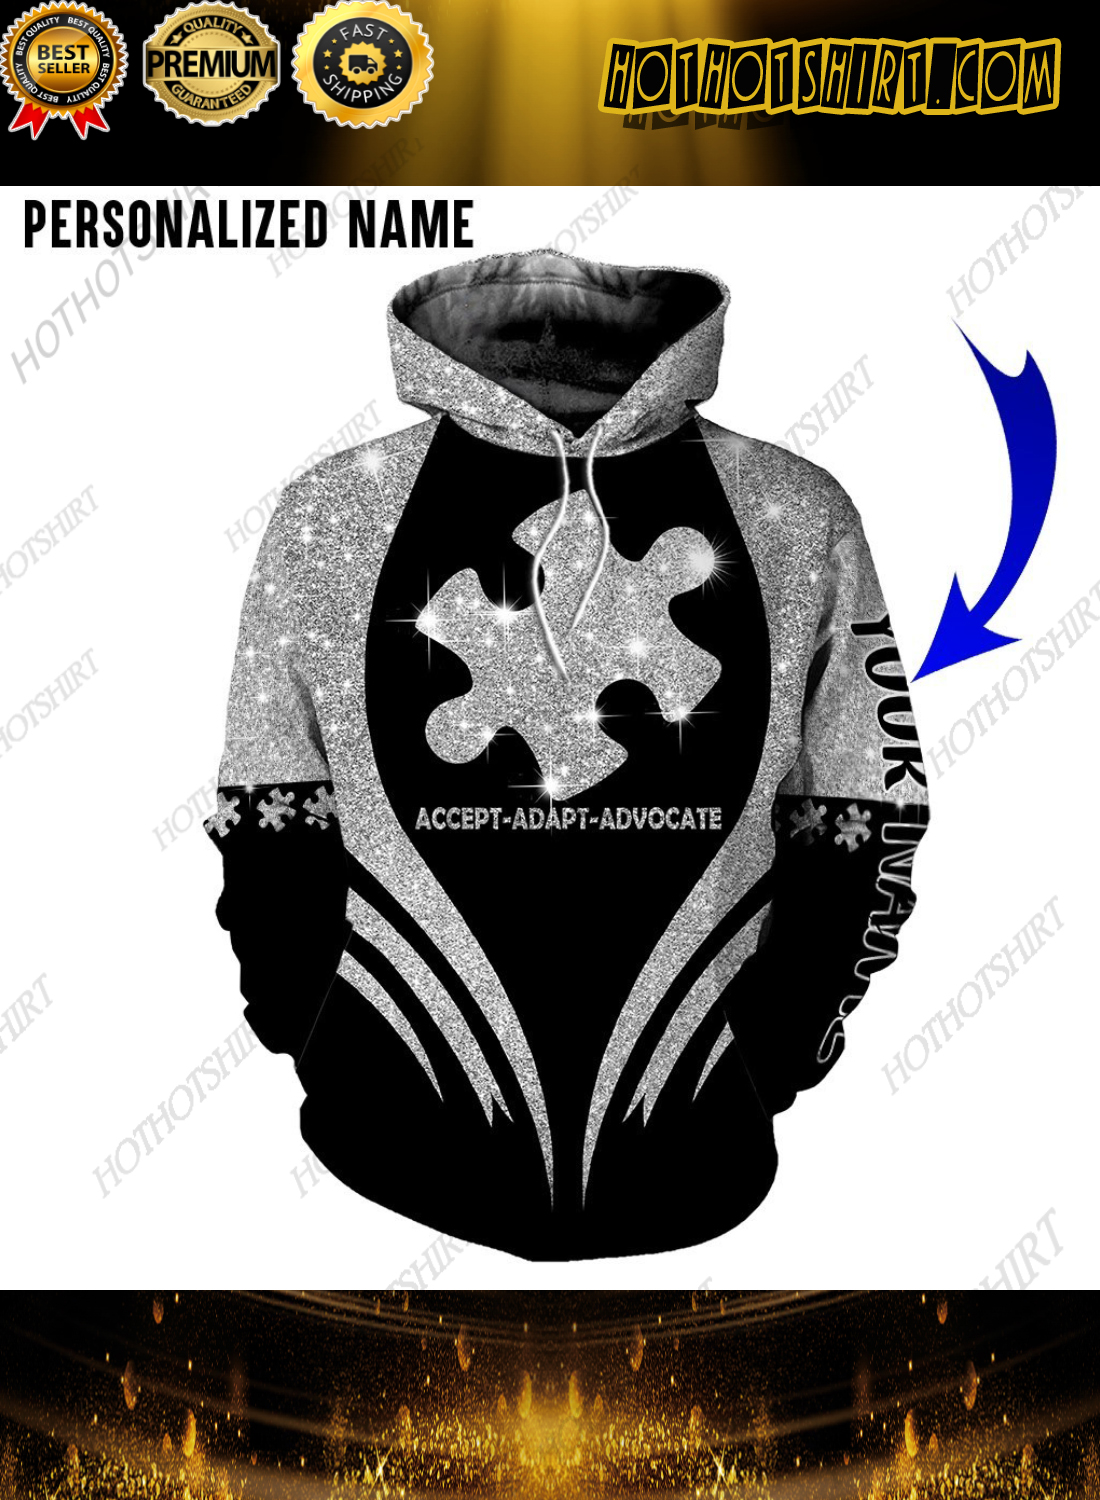 Personalized Name Autism Accept Adapt Advocate 3D Shirts